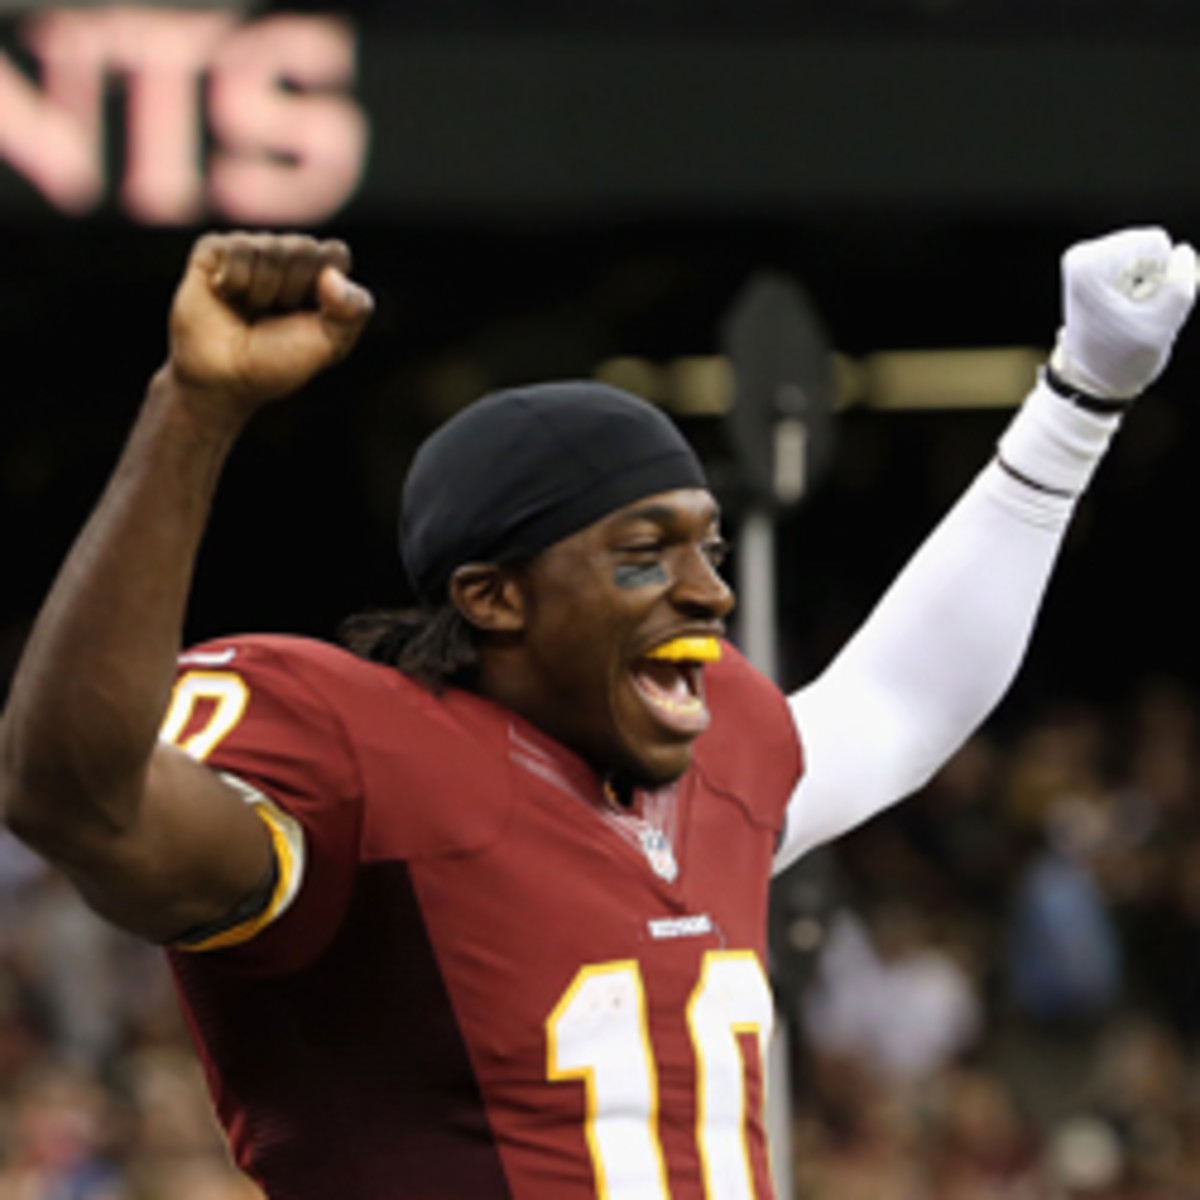 A doctor who performed surgery Robert Griffin III's knee says his recovery is unbelievable. (Robert Martinez/Getty Images)